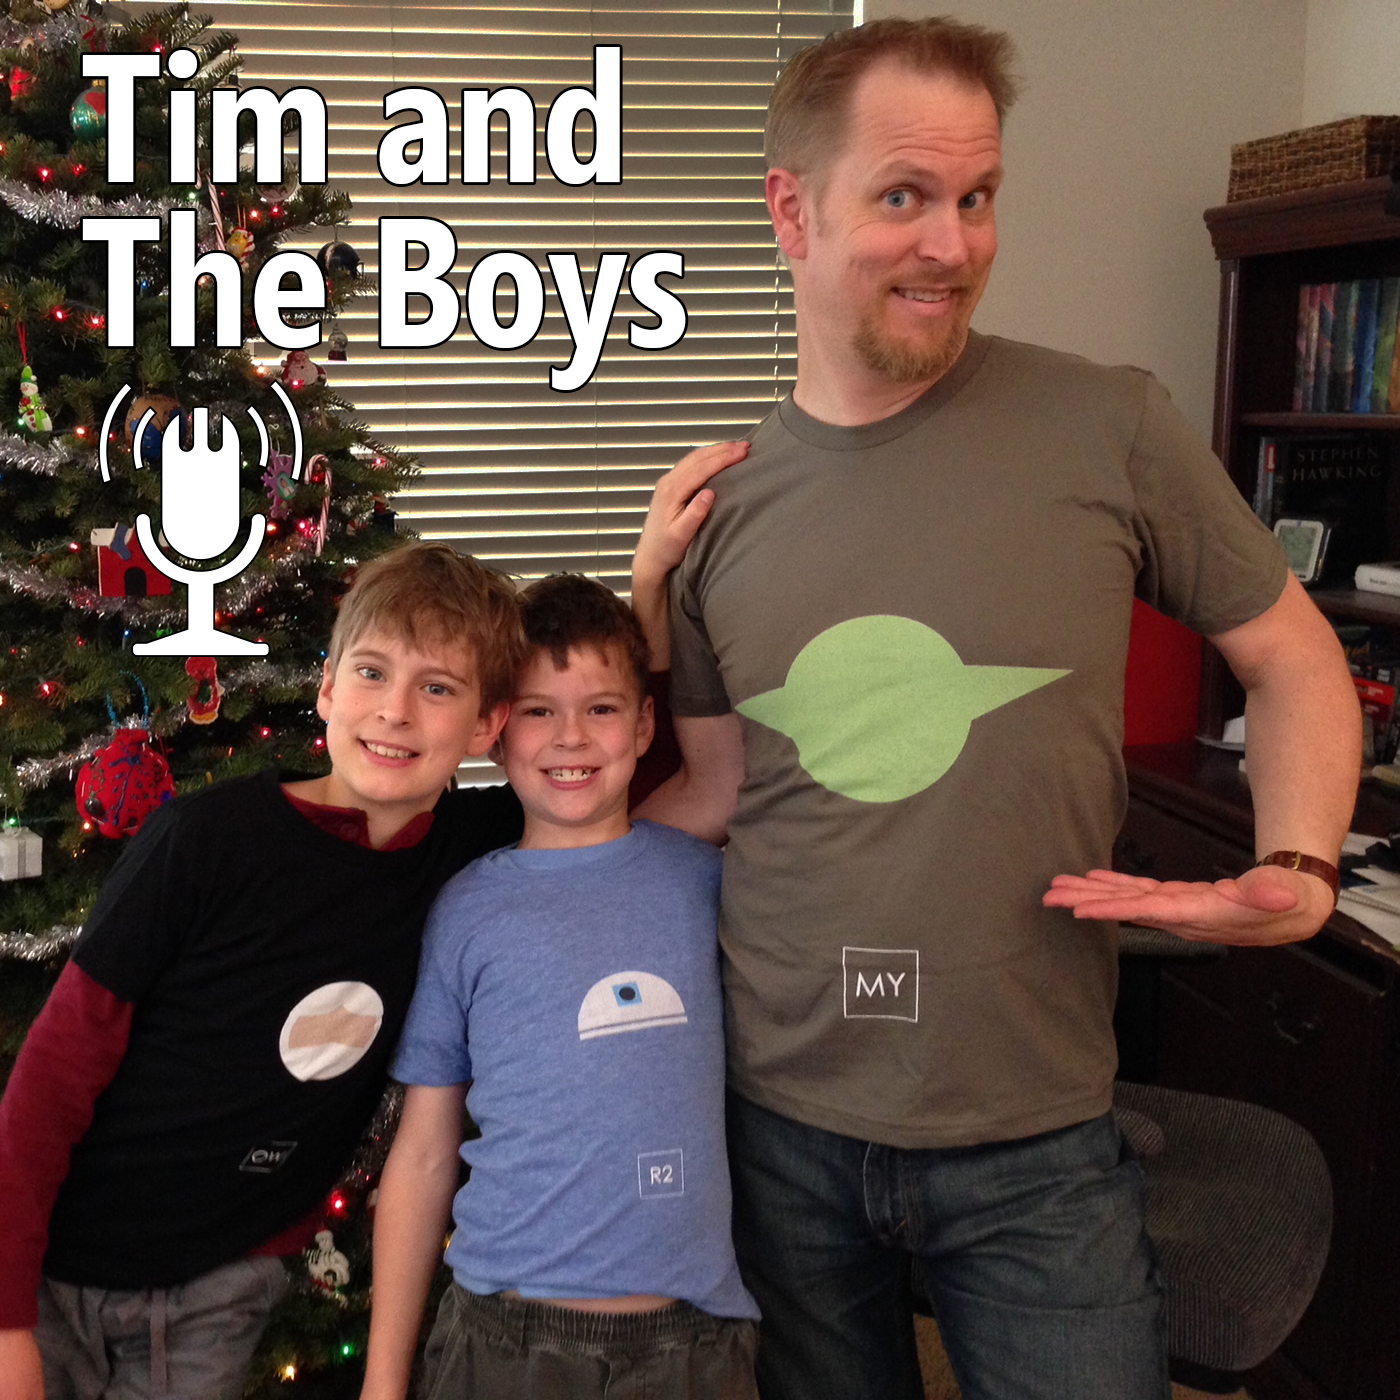 Tim and The Boys